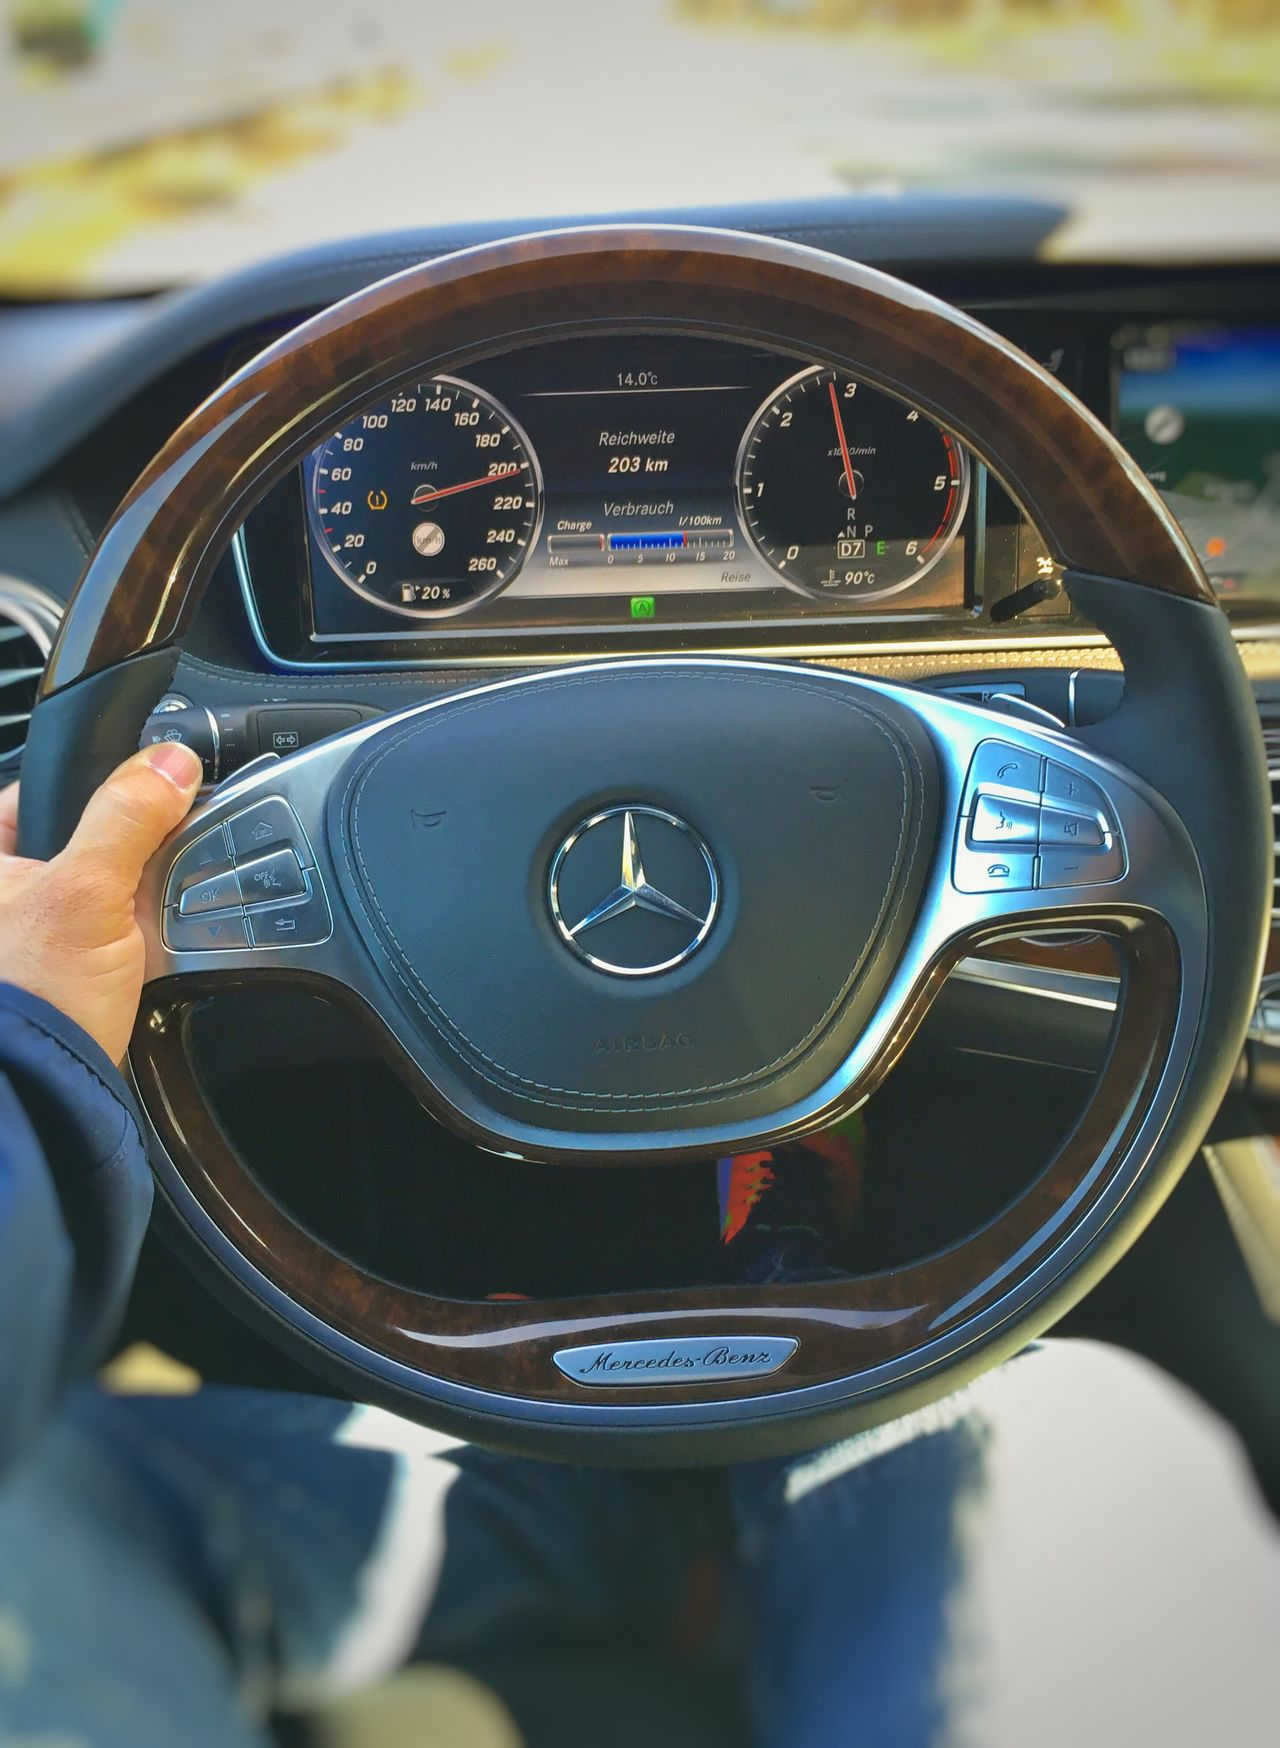 S-Style! …just dropped off this sweet ride! #SteeringWheel